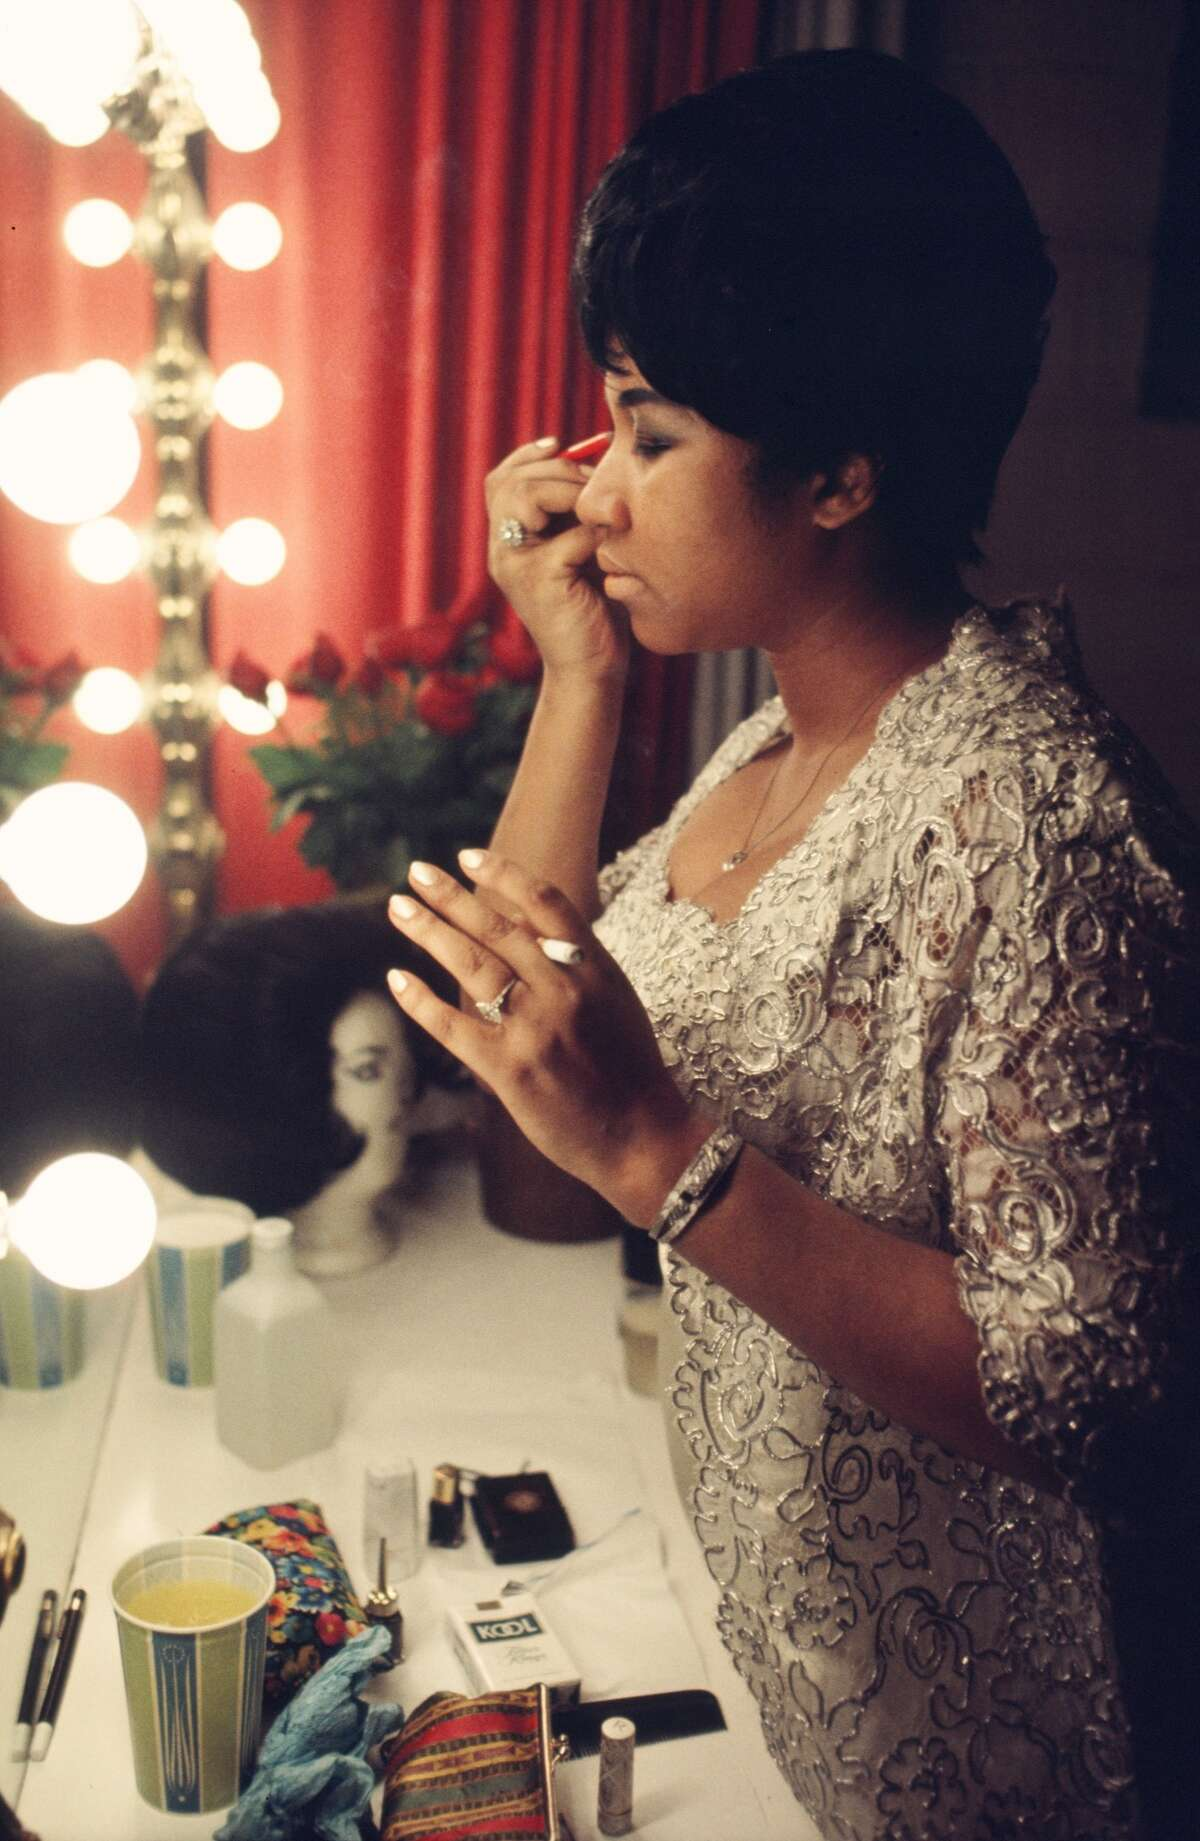 Singer Aretha Franklin fixes her makeup backstage before a performance at Symphony Hall in 1969, Newark, New Jersey. (Photo by:Walter Iooss/Getty Images)